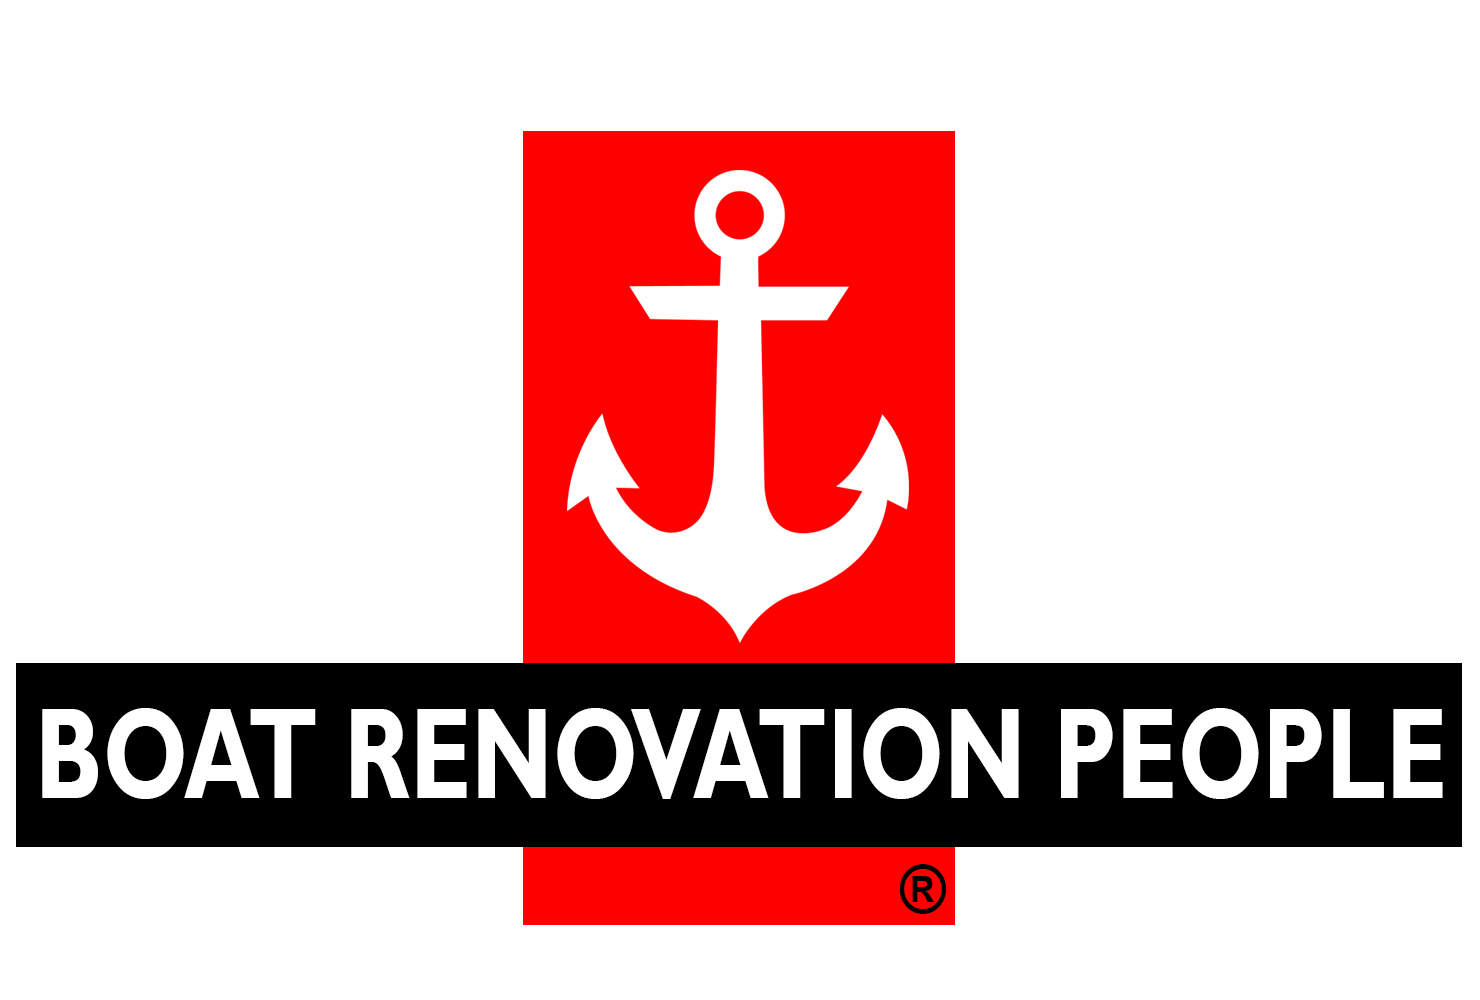 Boat Renovation People